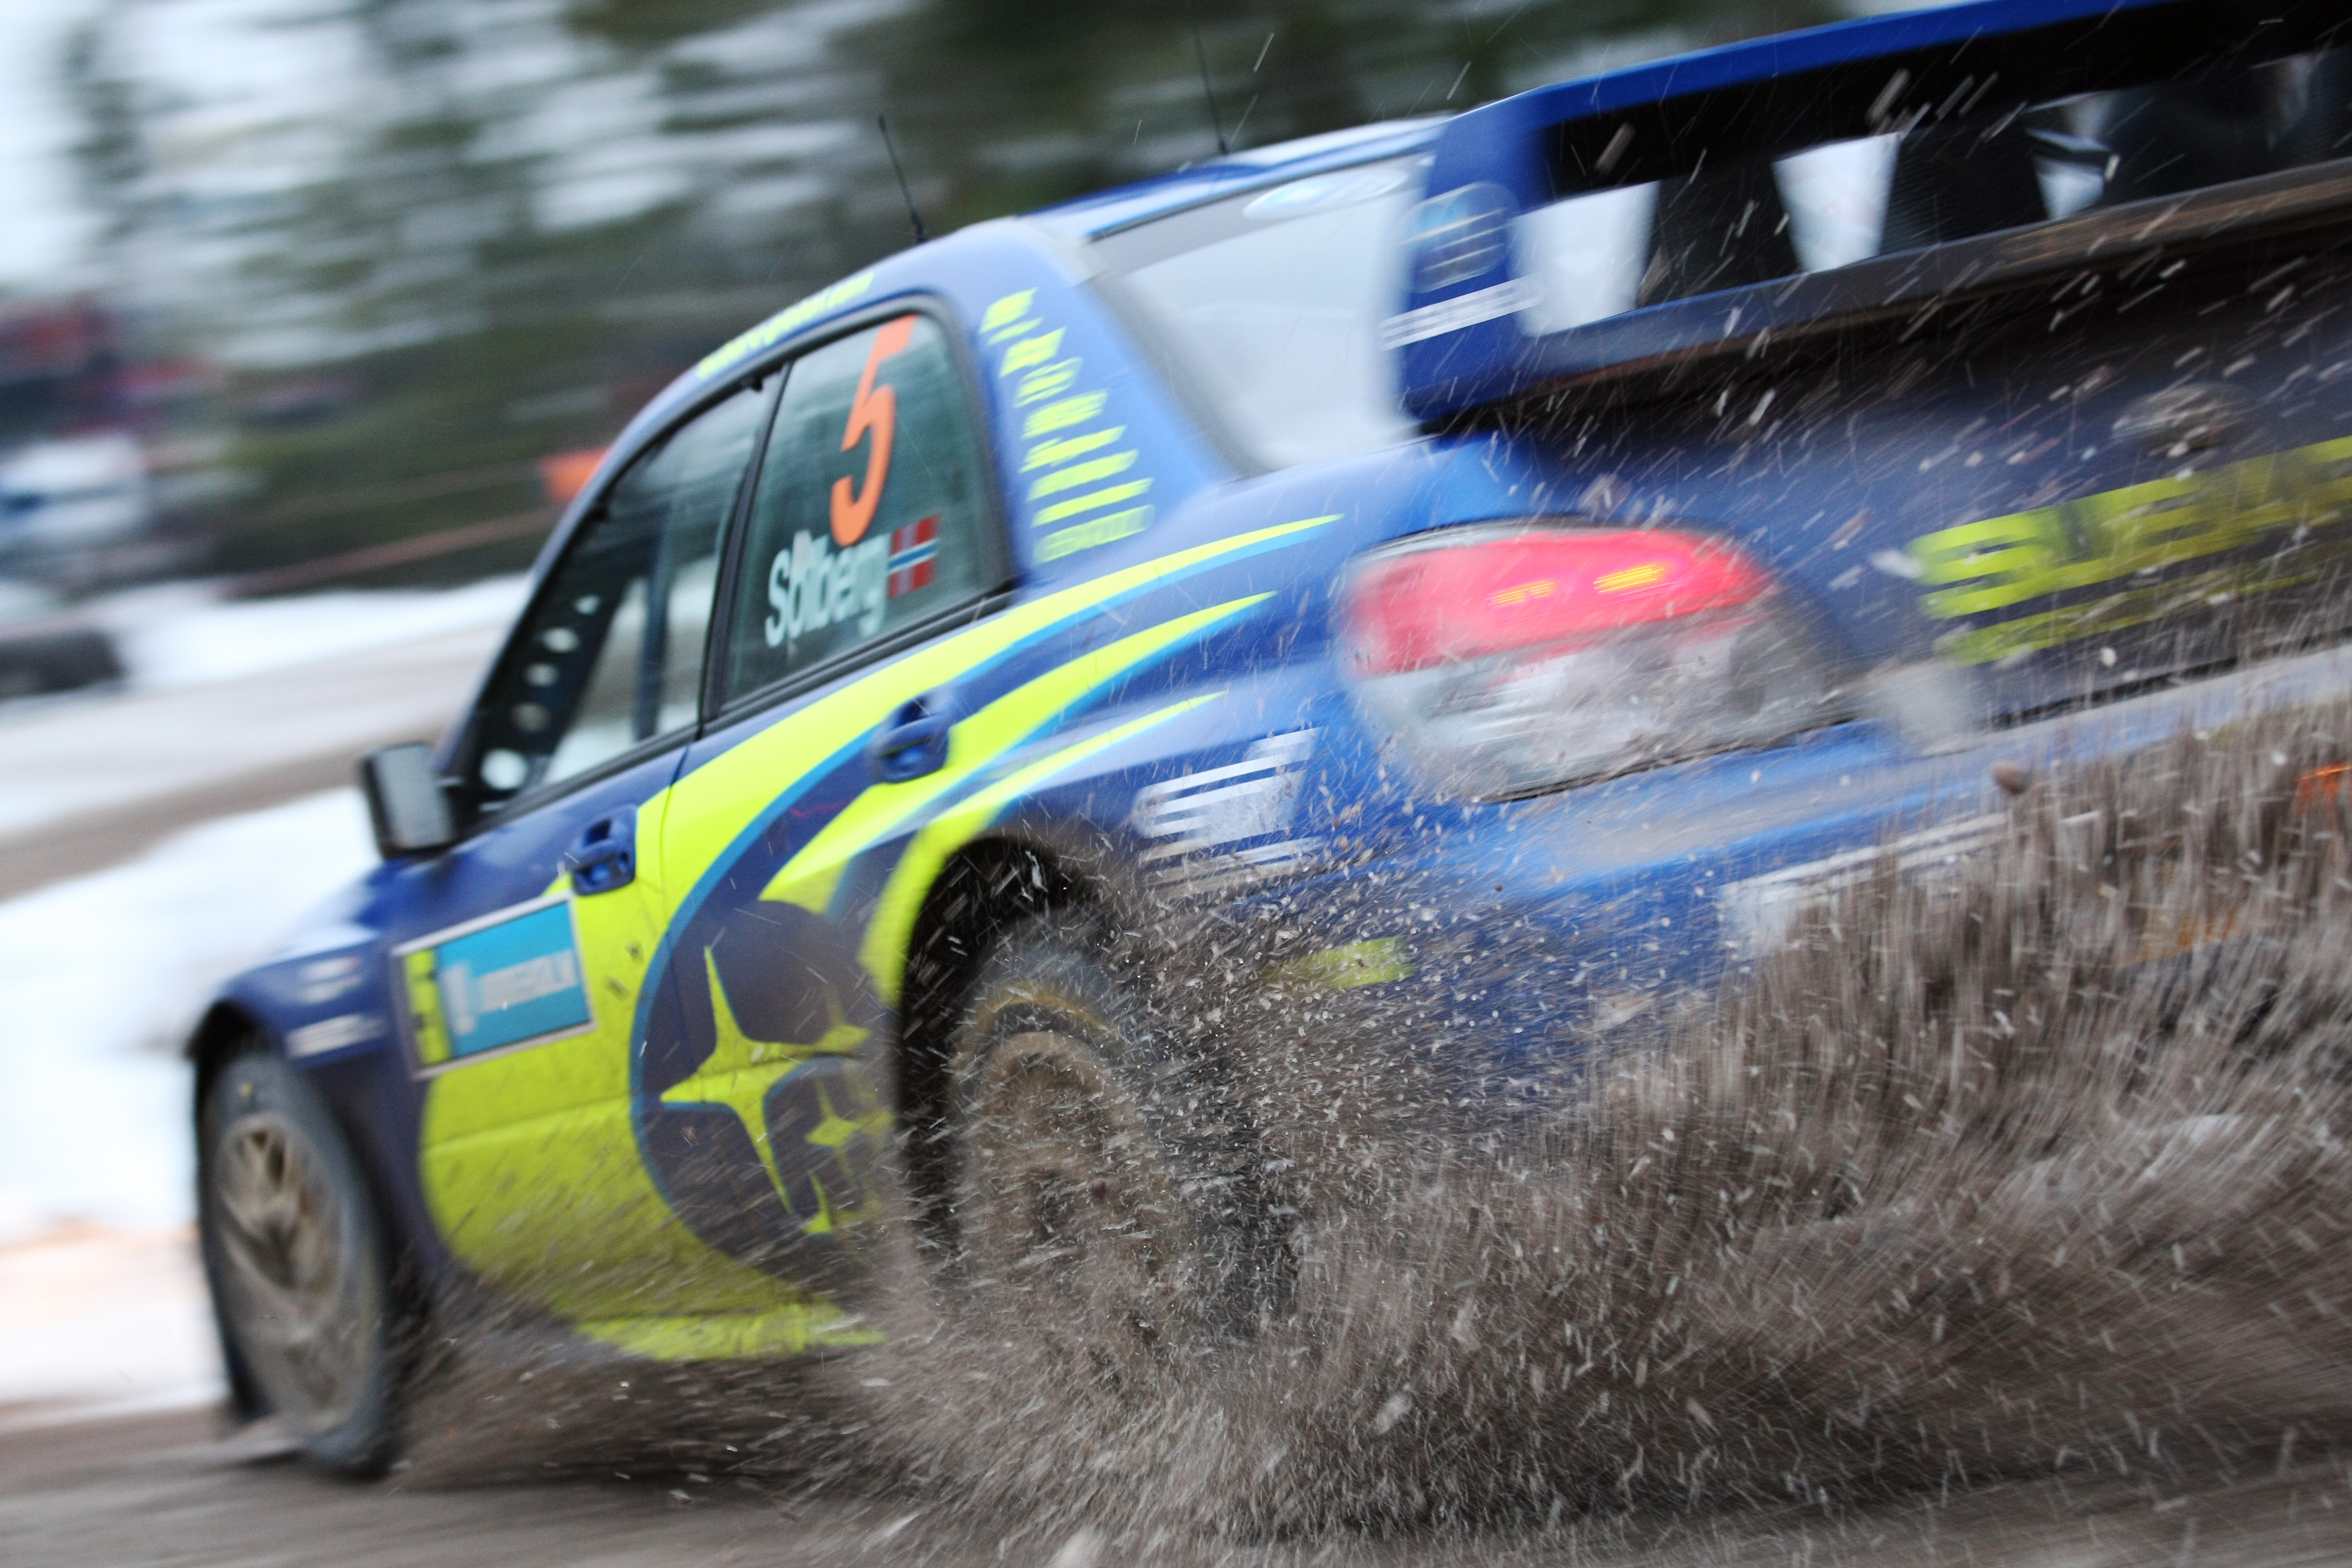 Subaru Impreza Wrx Sti Rally Car Wallpaper Car Subaru Subaru Impreza Rally Cars Wallpapers Hd